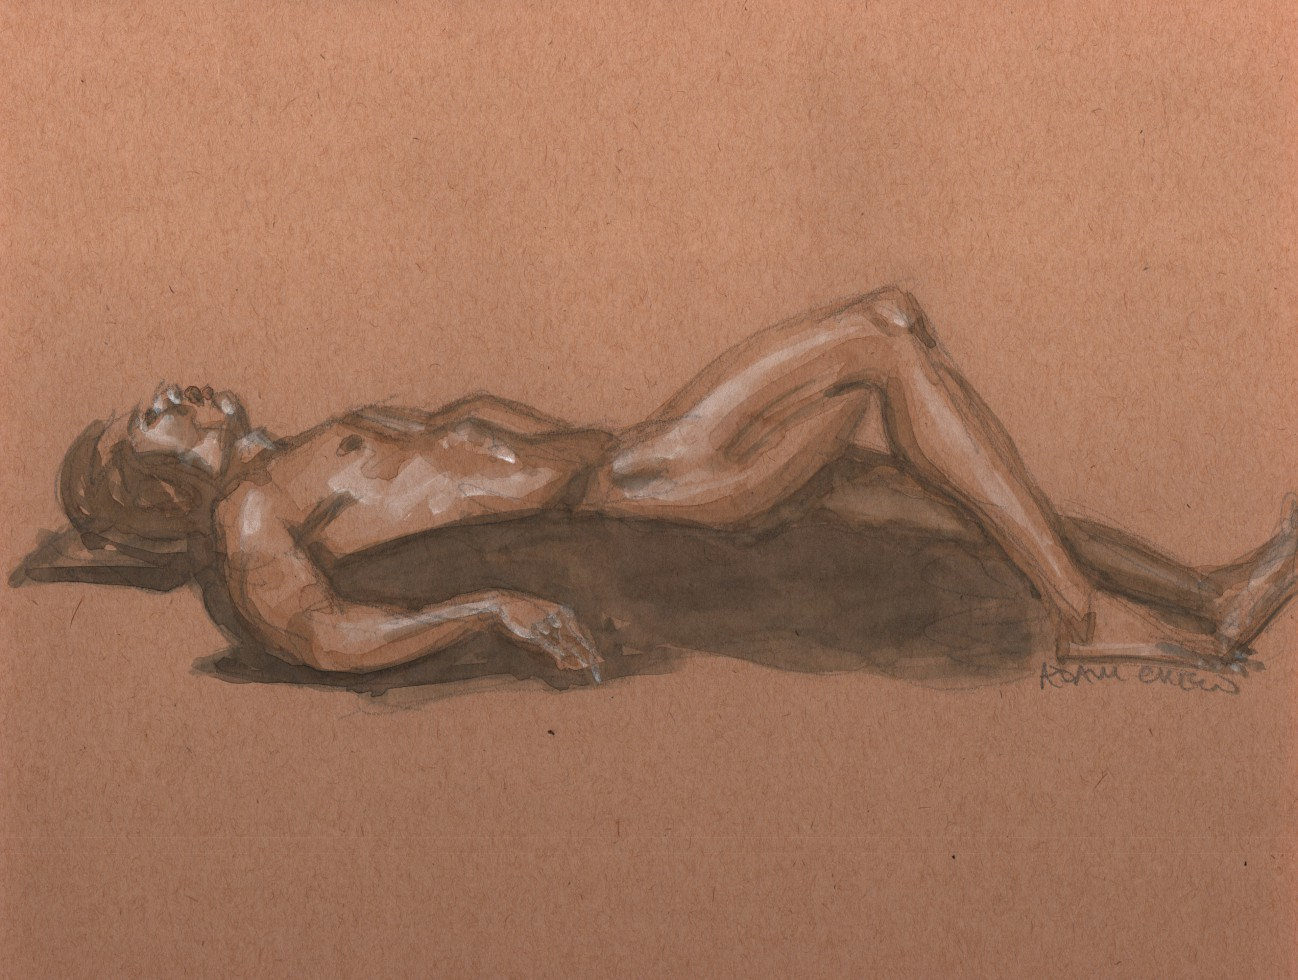 man-laying-1-AdamChew-2013